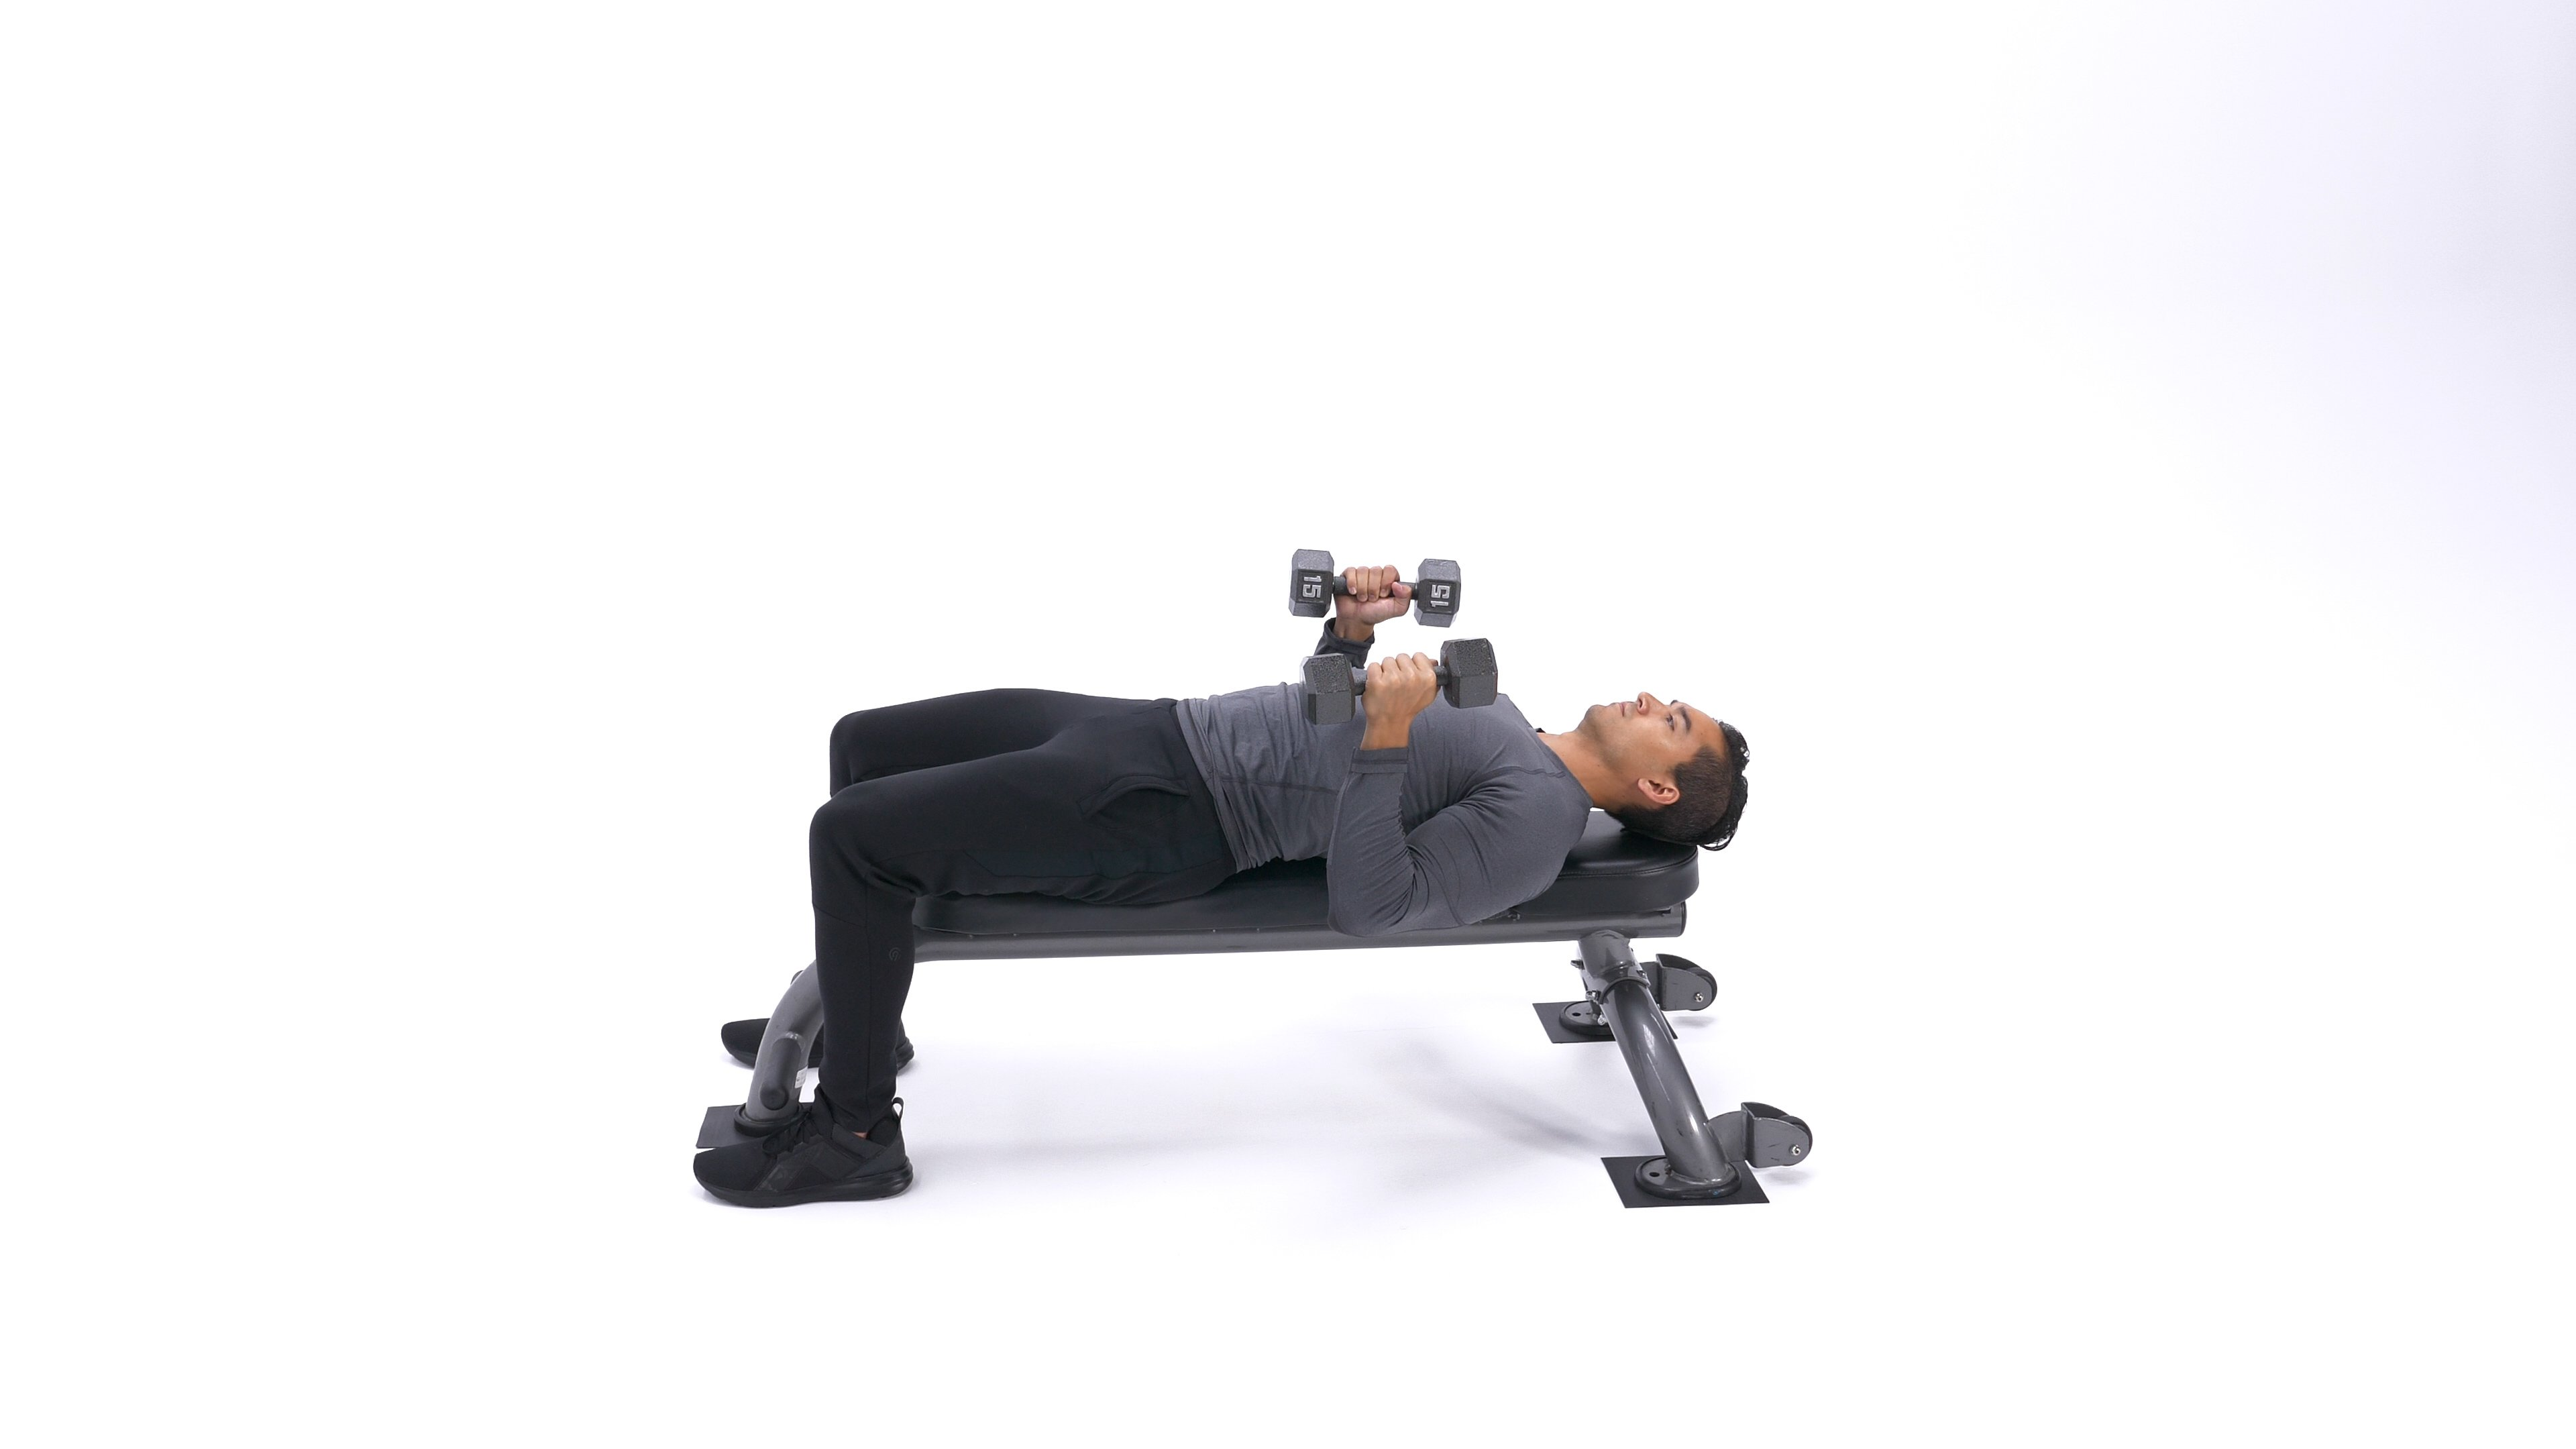 Neutral-grip dumbbell bench press image